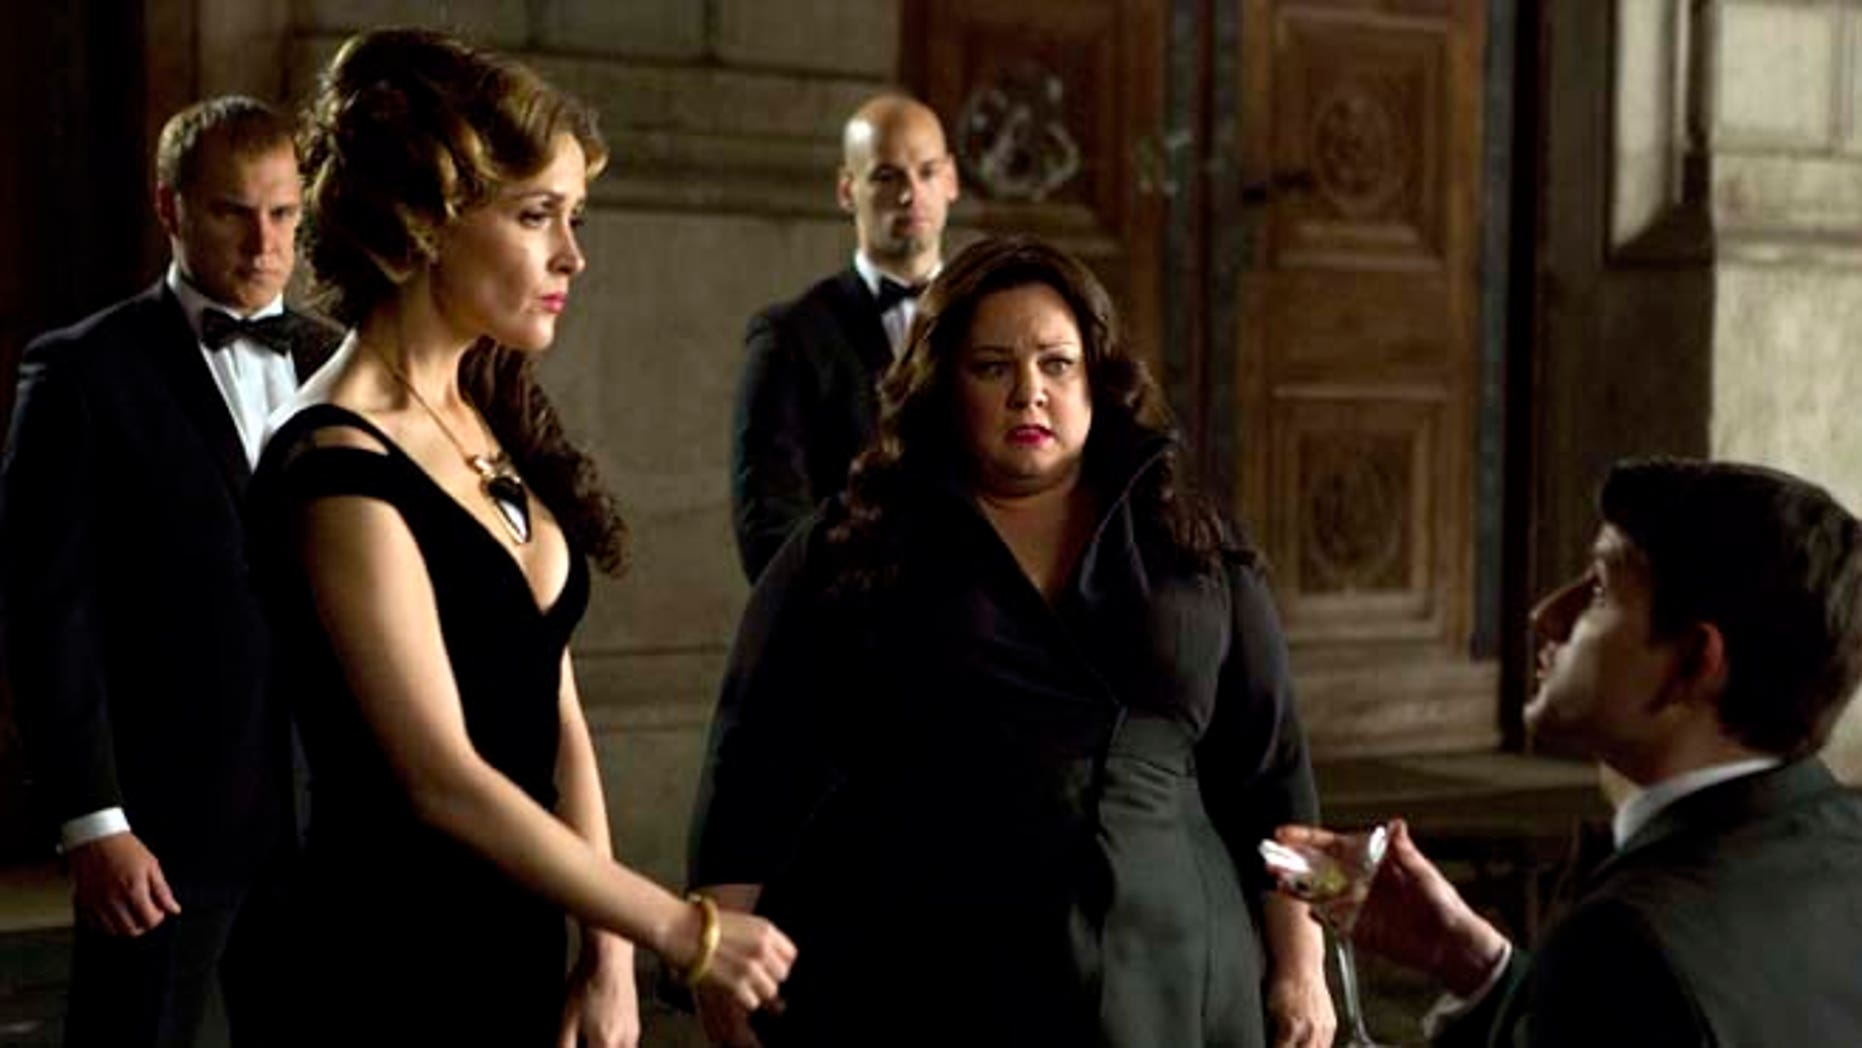 """This photo provided by Twentieth Century Fox shows, Melissa McCarthy, second right, infiltrating an arms dealing ring led by Rose Byrne, left, in a scene from the film, """"Spy."""""""